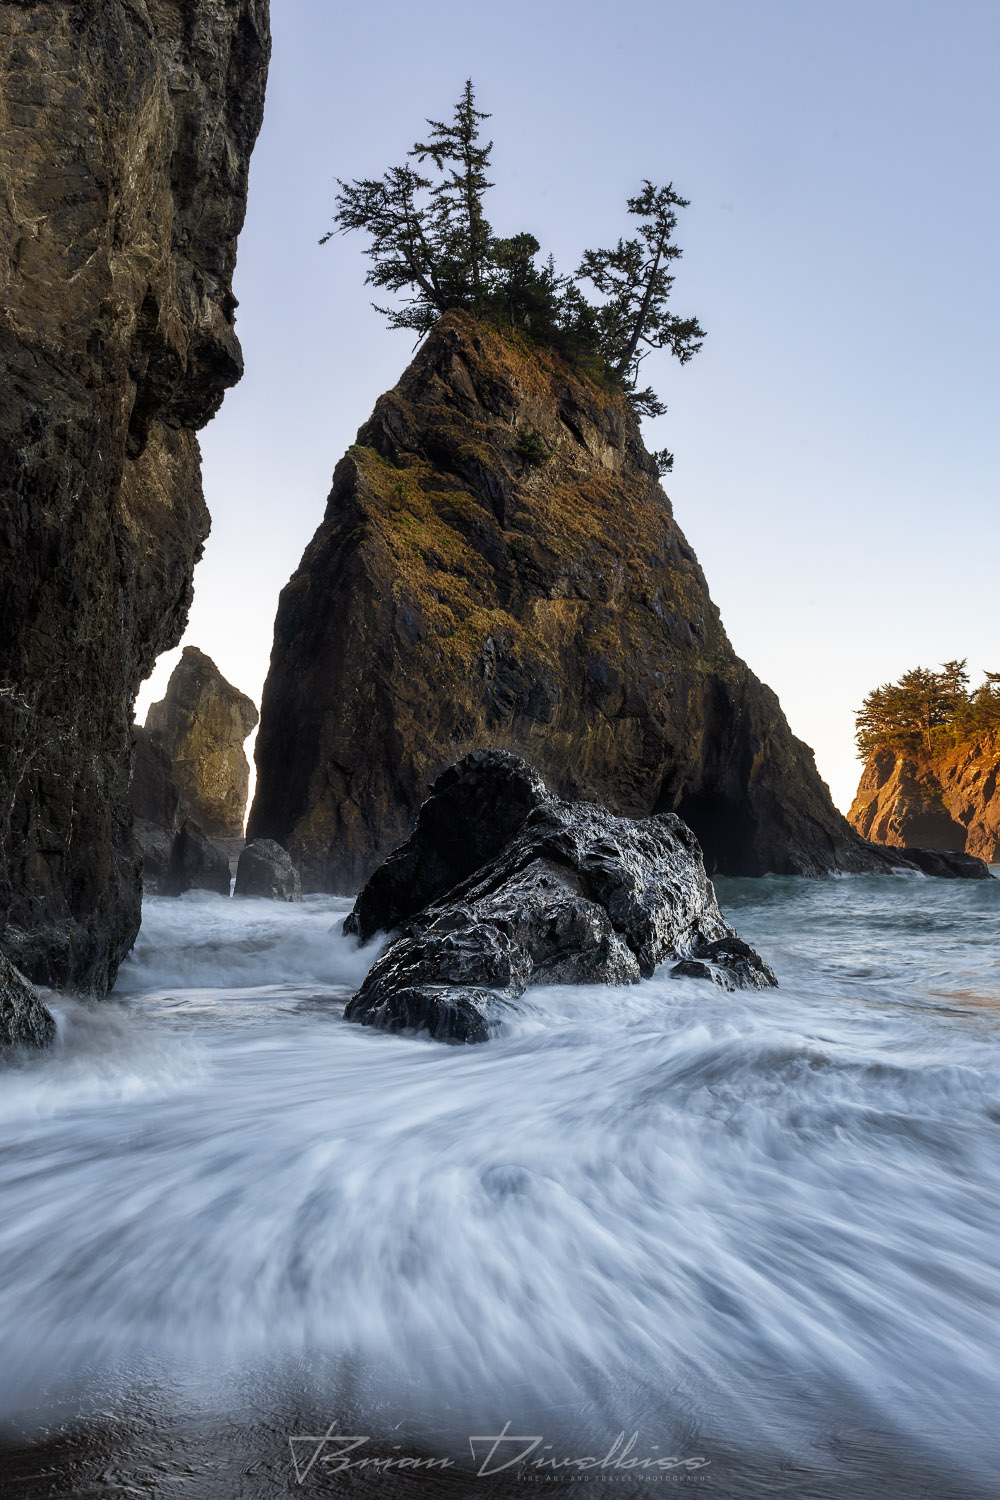 Swirling waters surround seastacks on the coast of Southern Oregon.